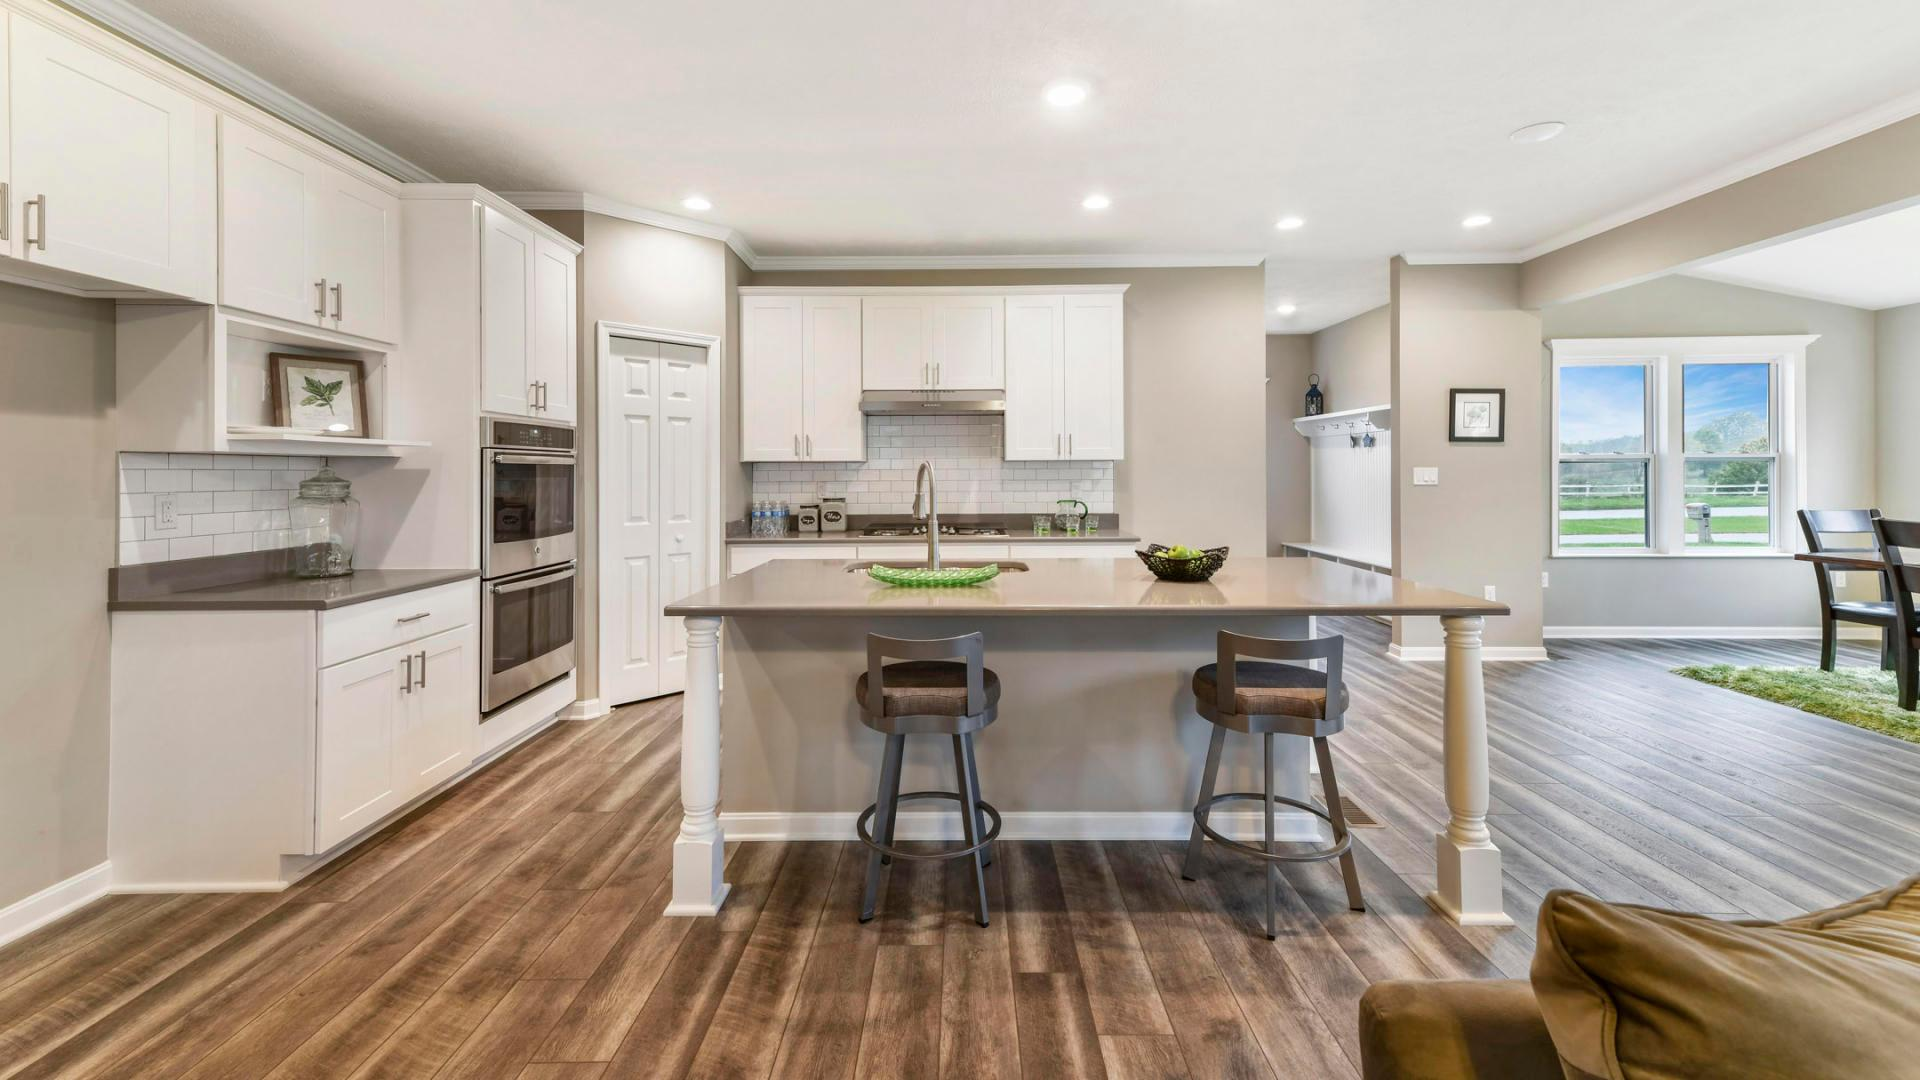 Kitchen featured in the Carlisle By Maronda Homes in Pittsburgh, PA